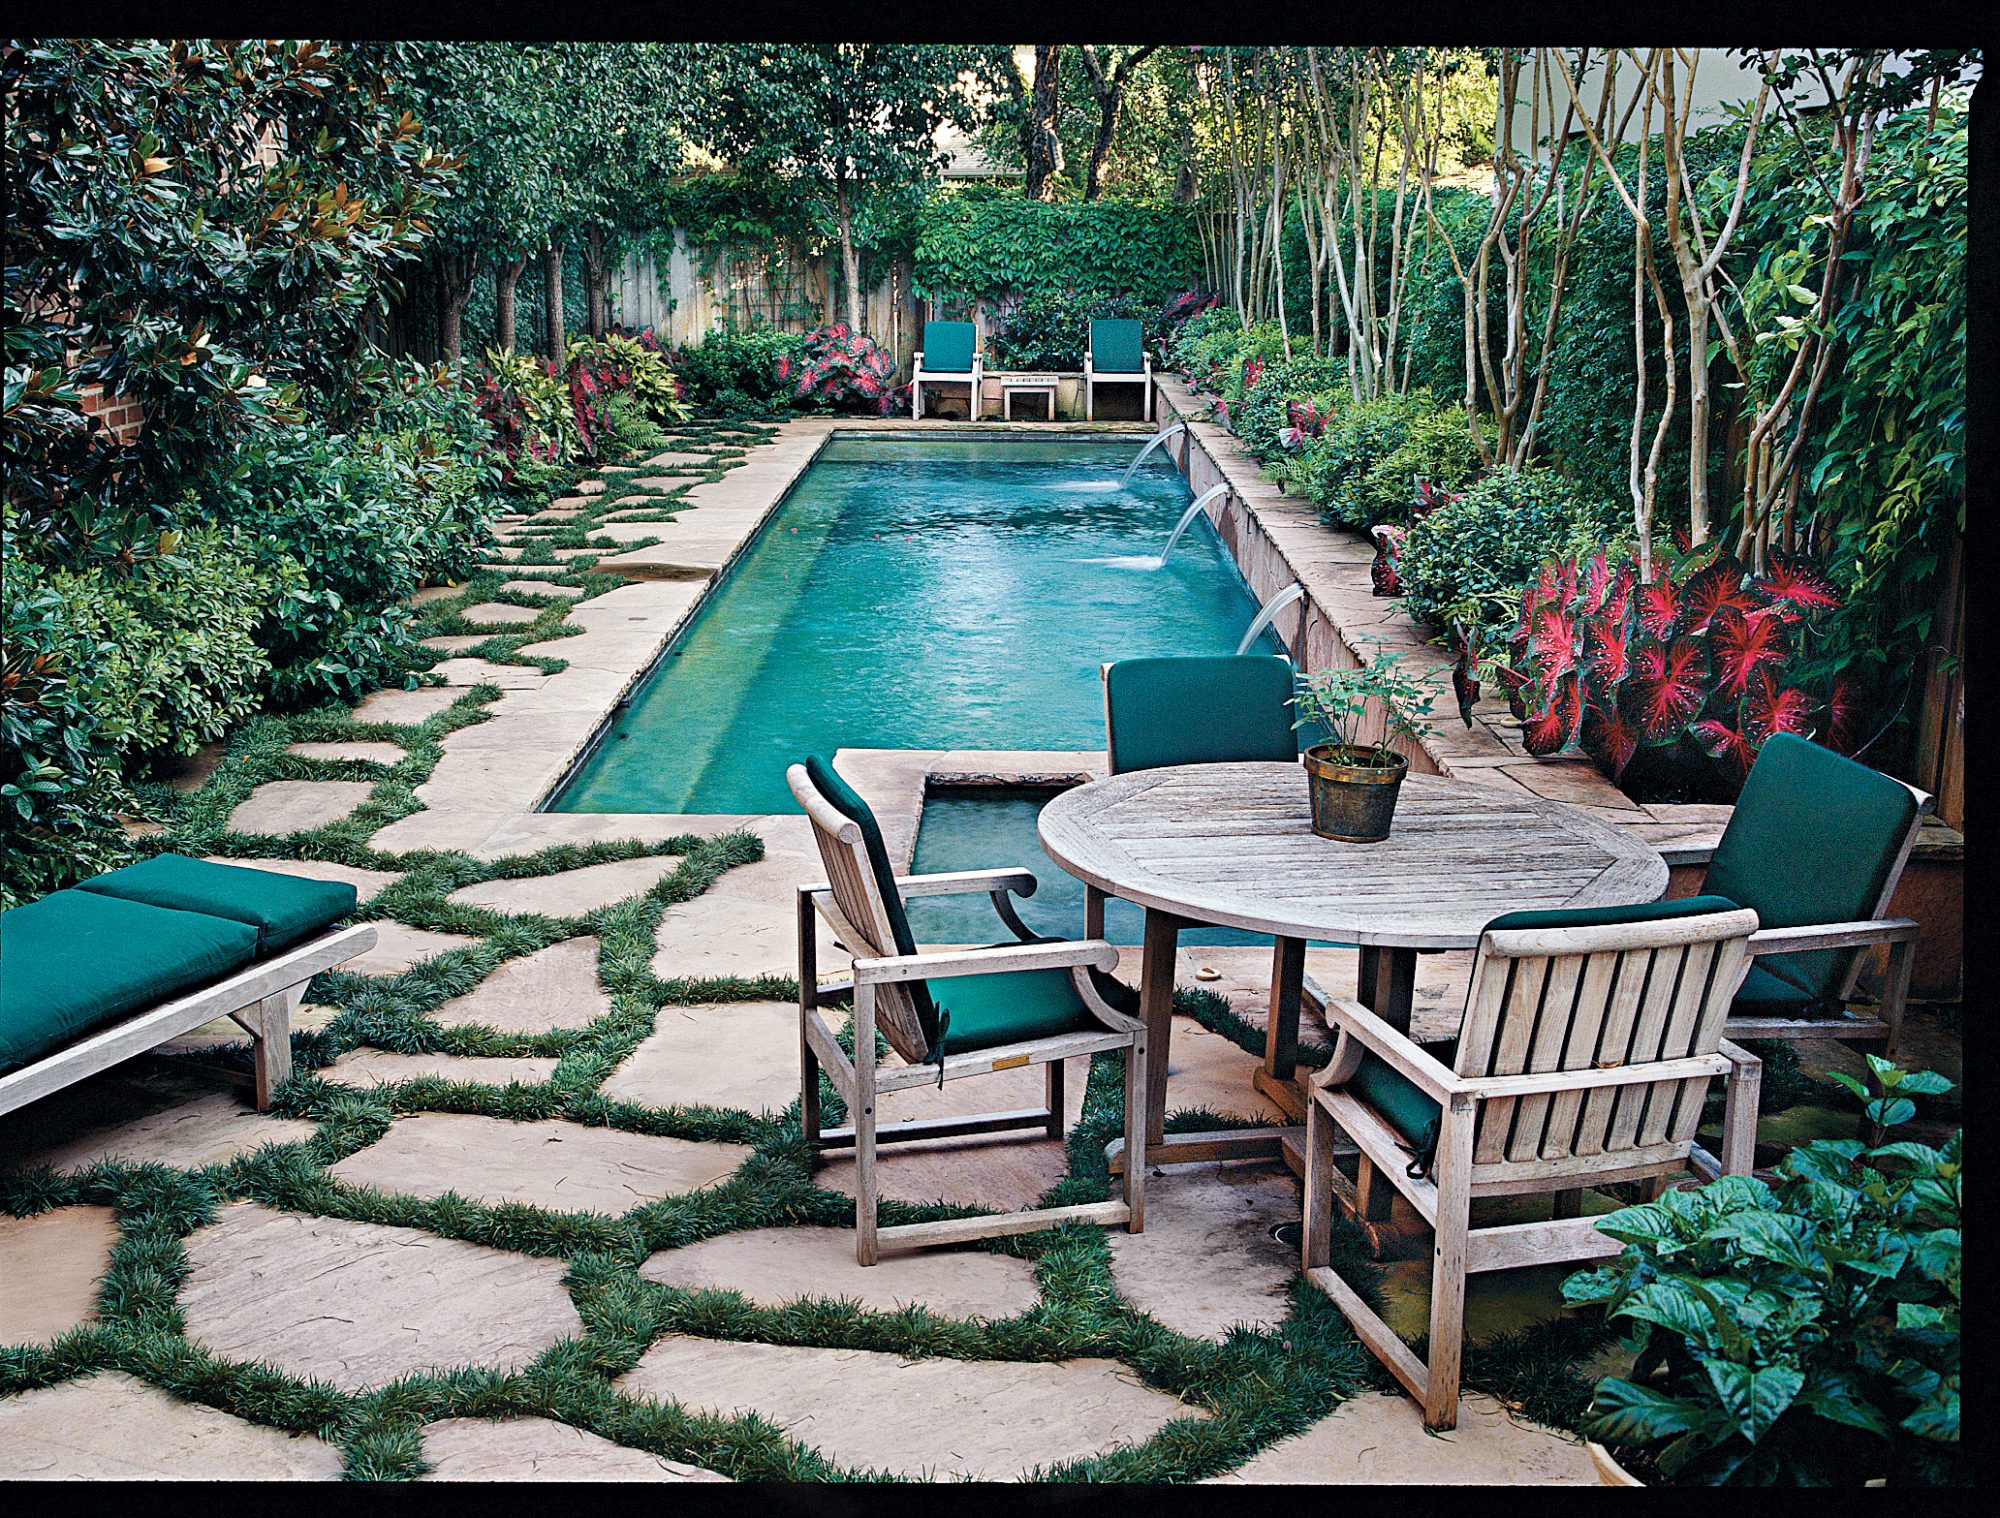 Inviting Oasis